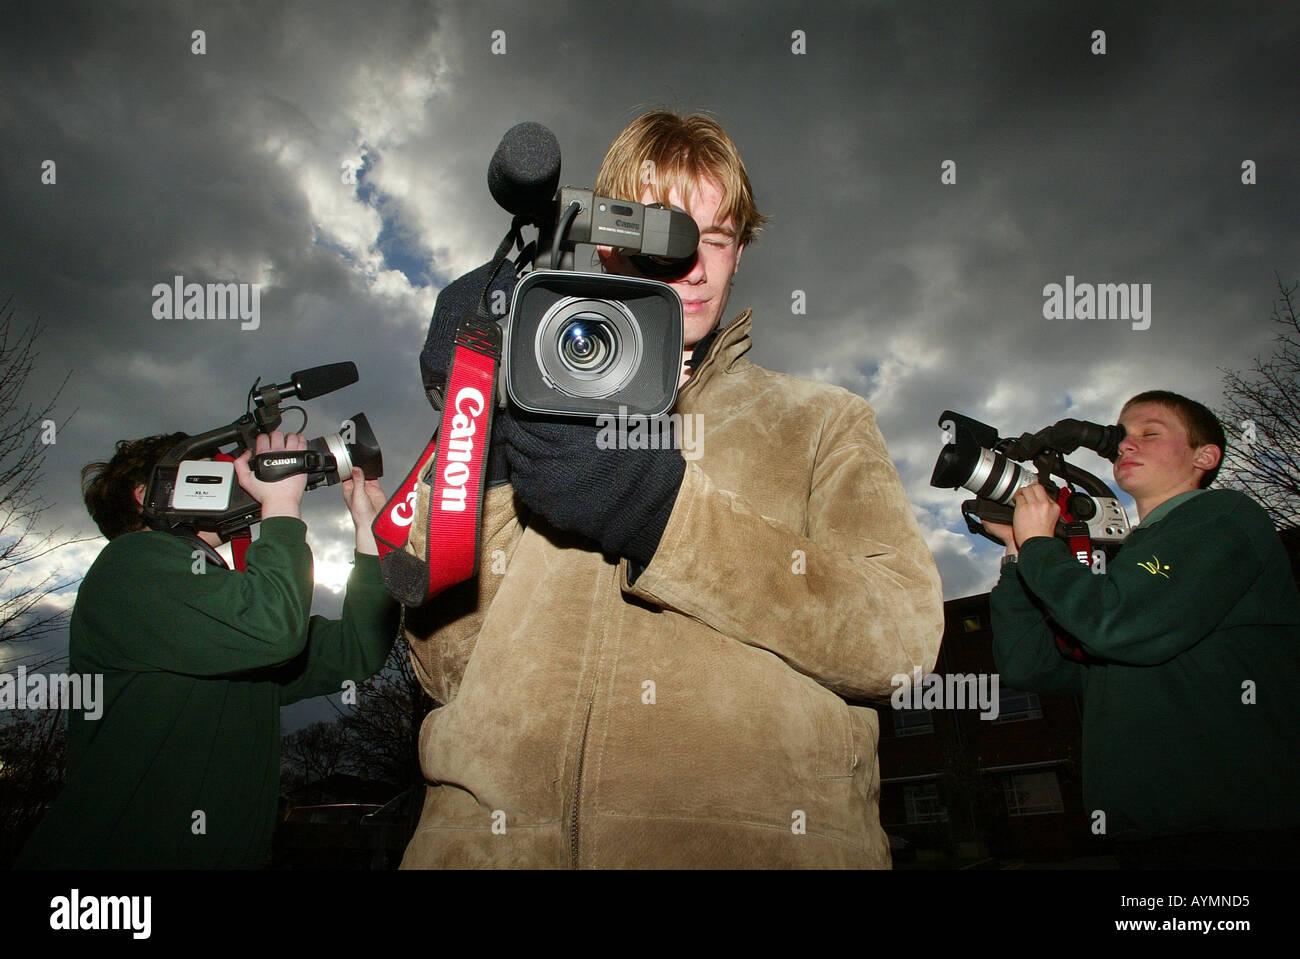 school children with video cameras *EDITORIAL USE ONLY* - Stock Image